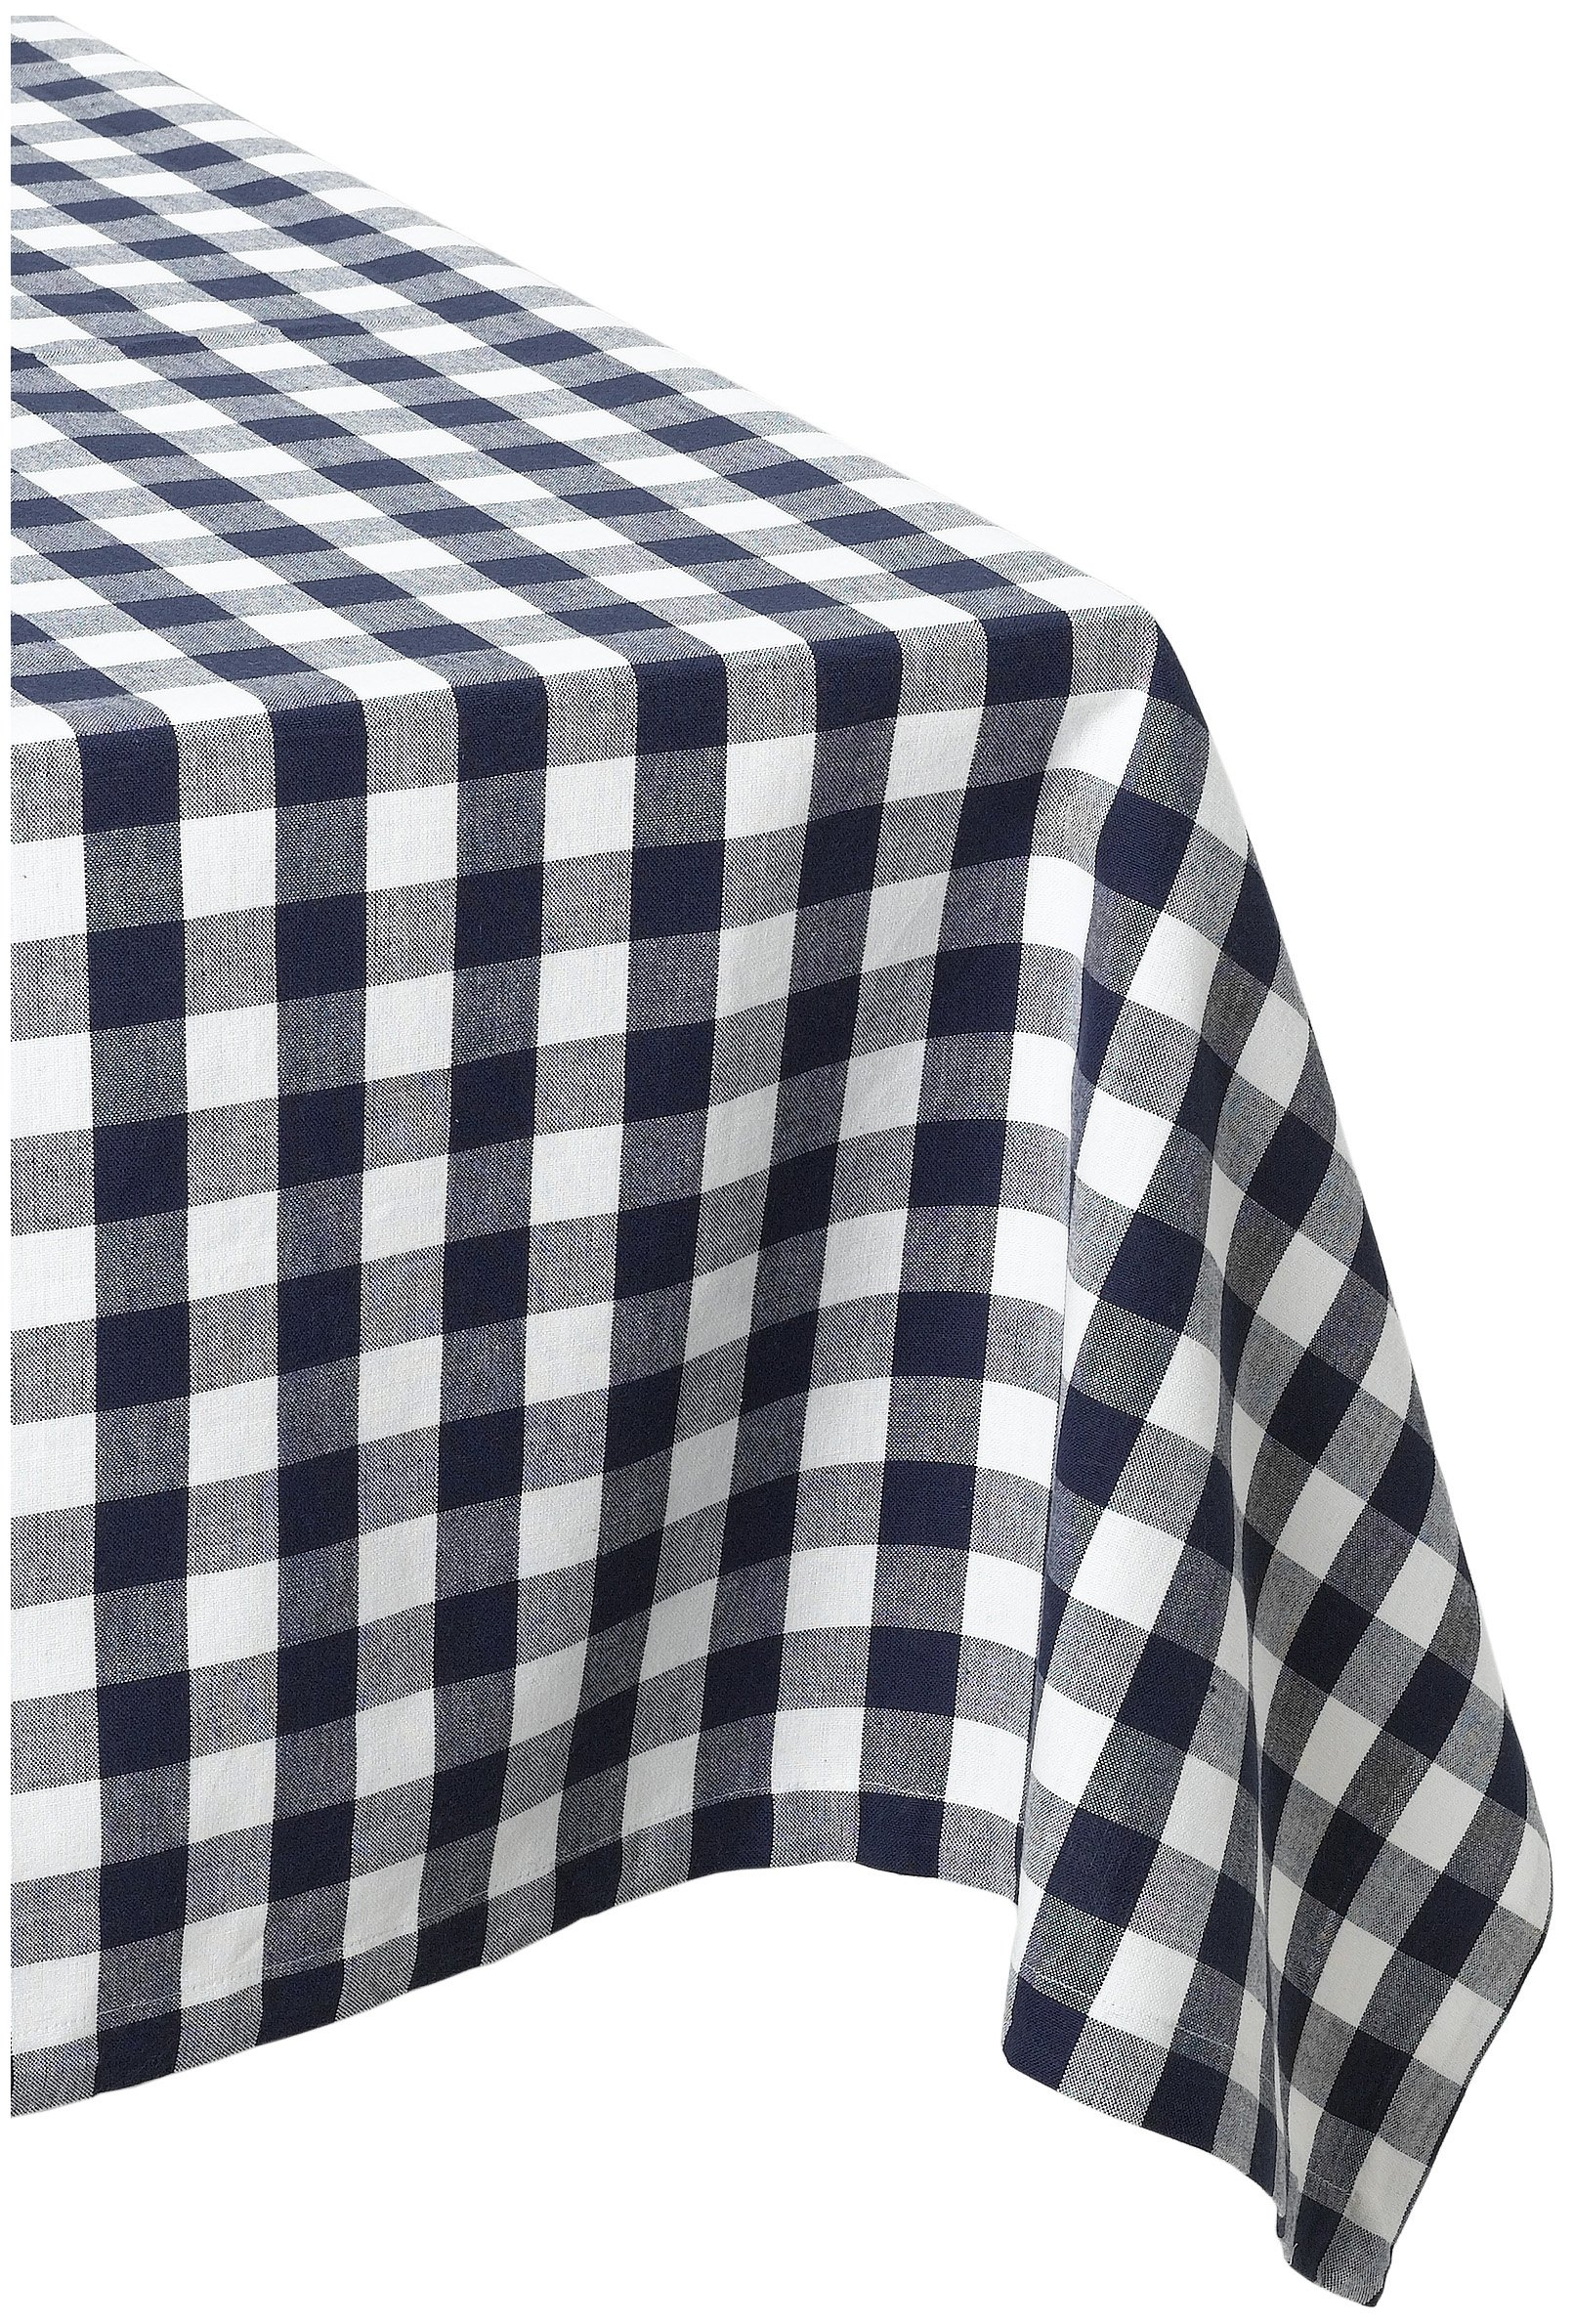 DII 100% Cotton, Machine Washable, Dinner, Summer & Picnic Tablecloth 60 x 84'', Nautical Blue Check, Seats 6 to 8 People